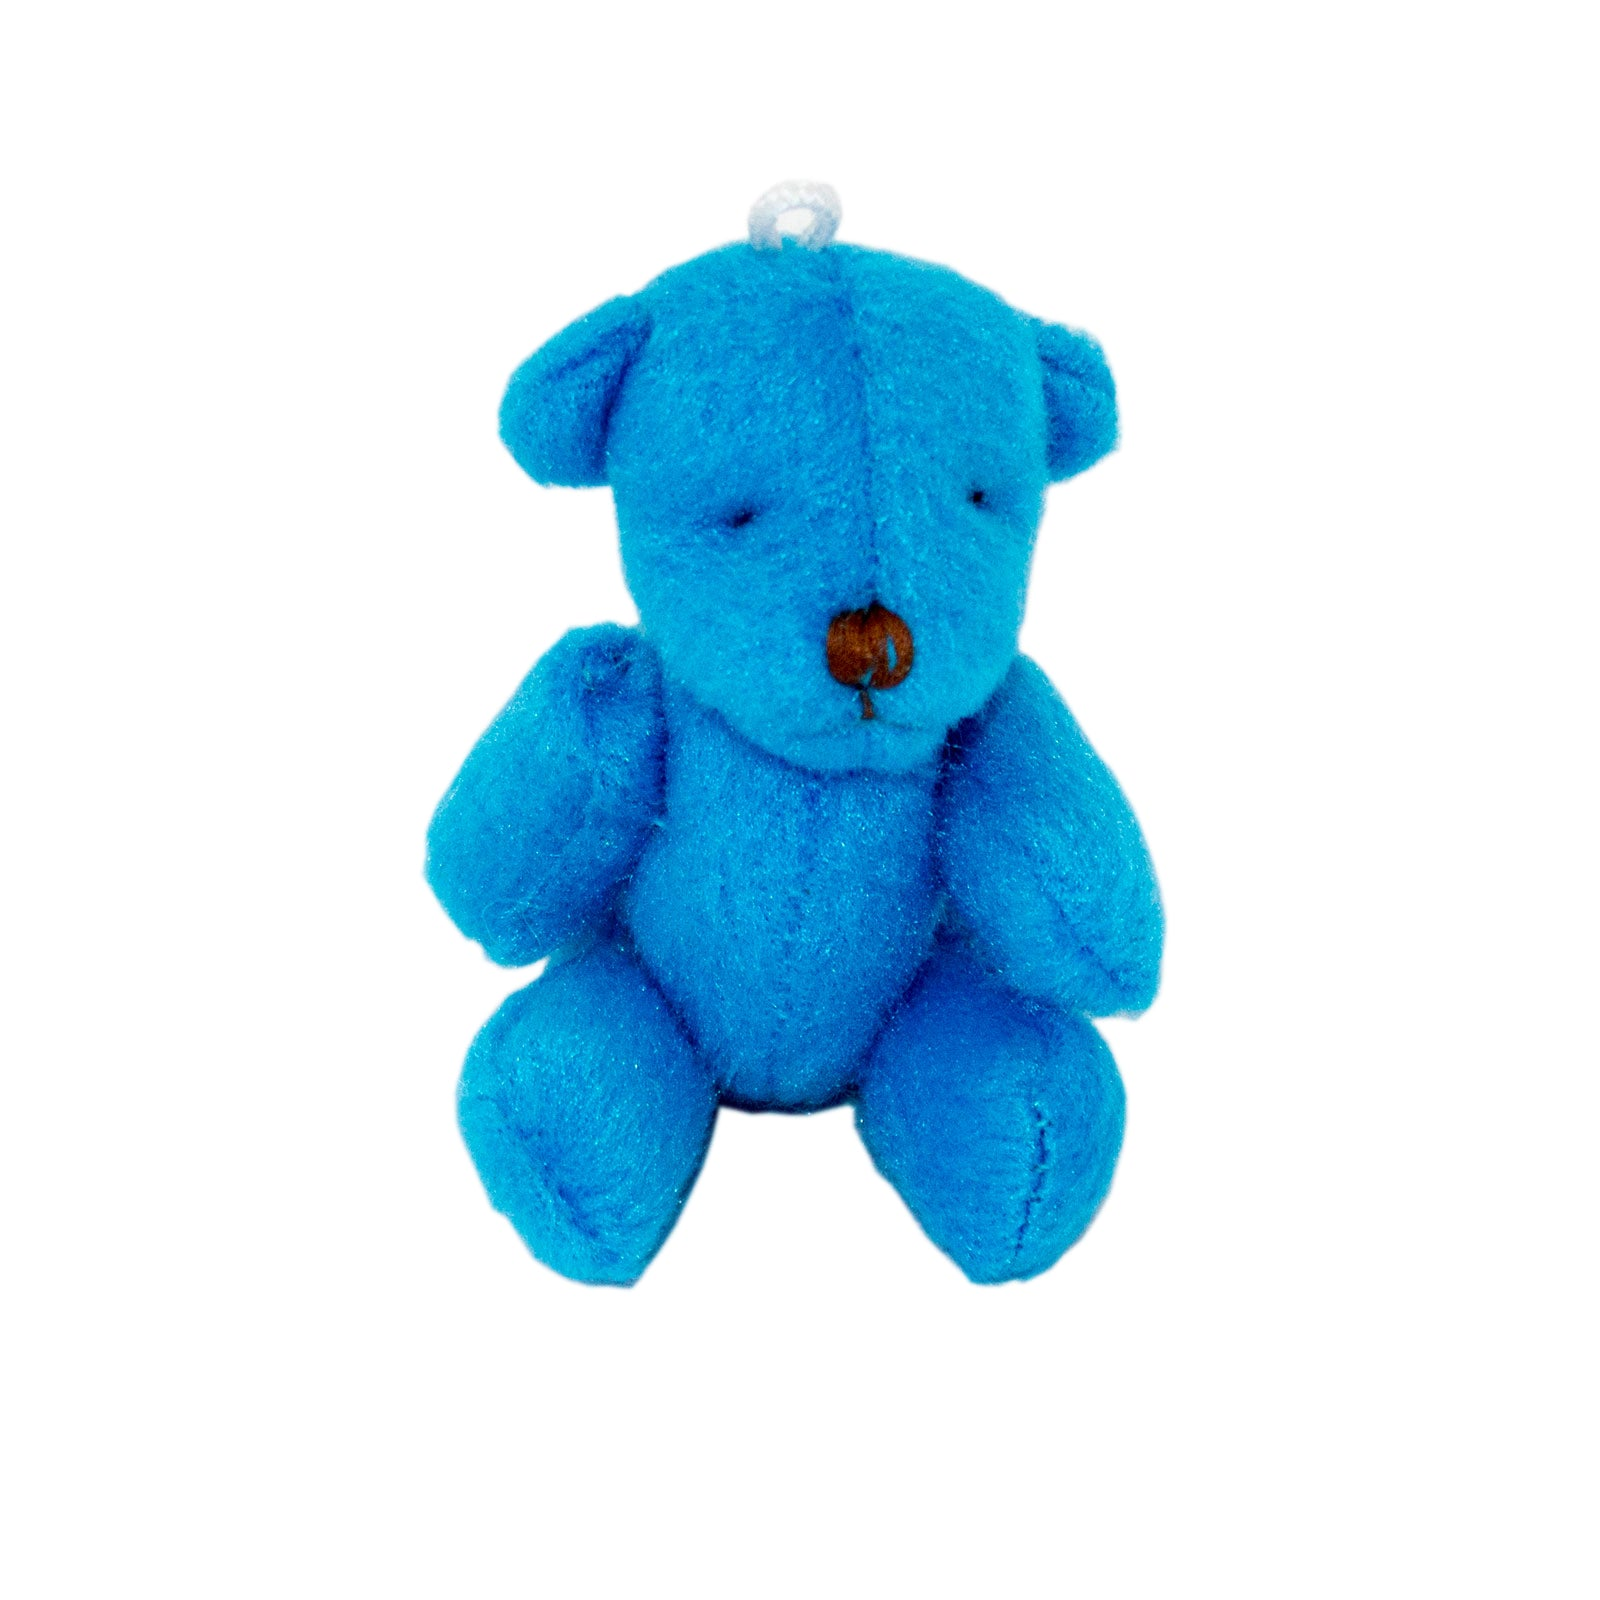 Small BLUE Teddy Bears X 100 - Cute Soft Adorable